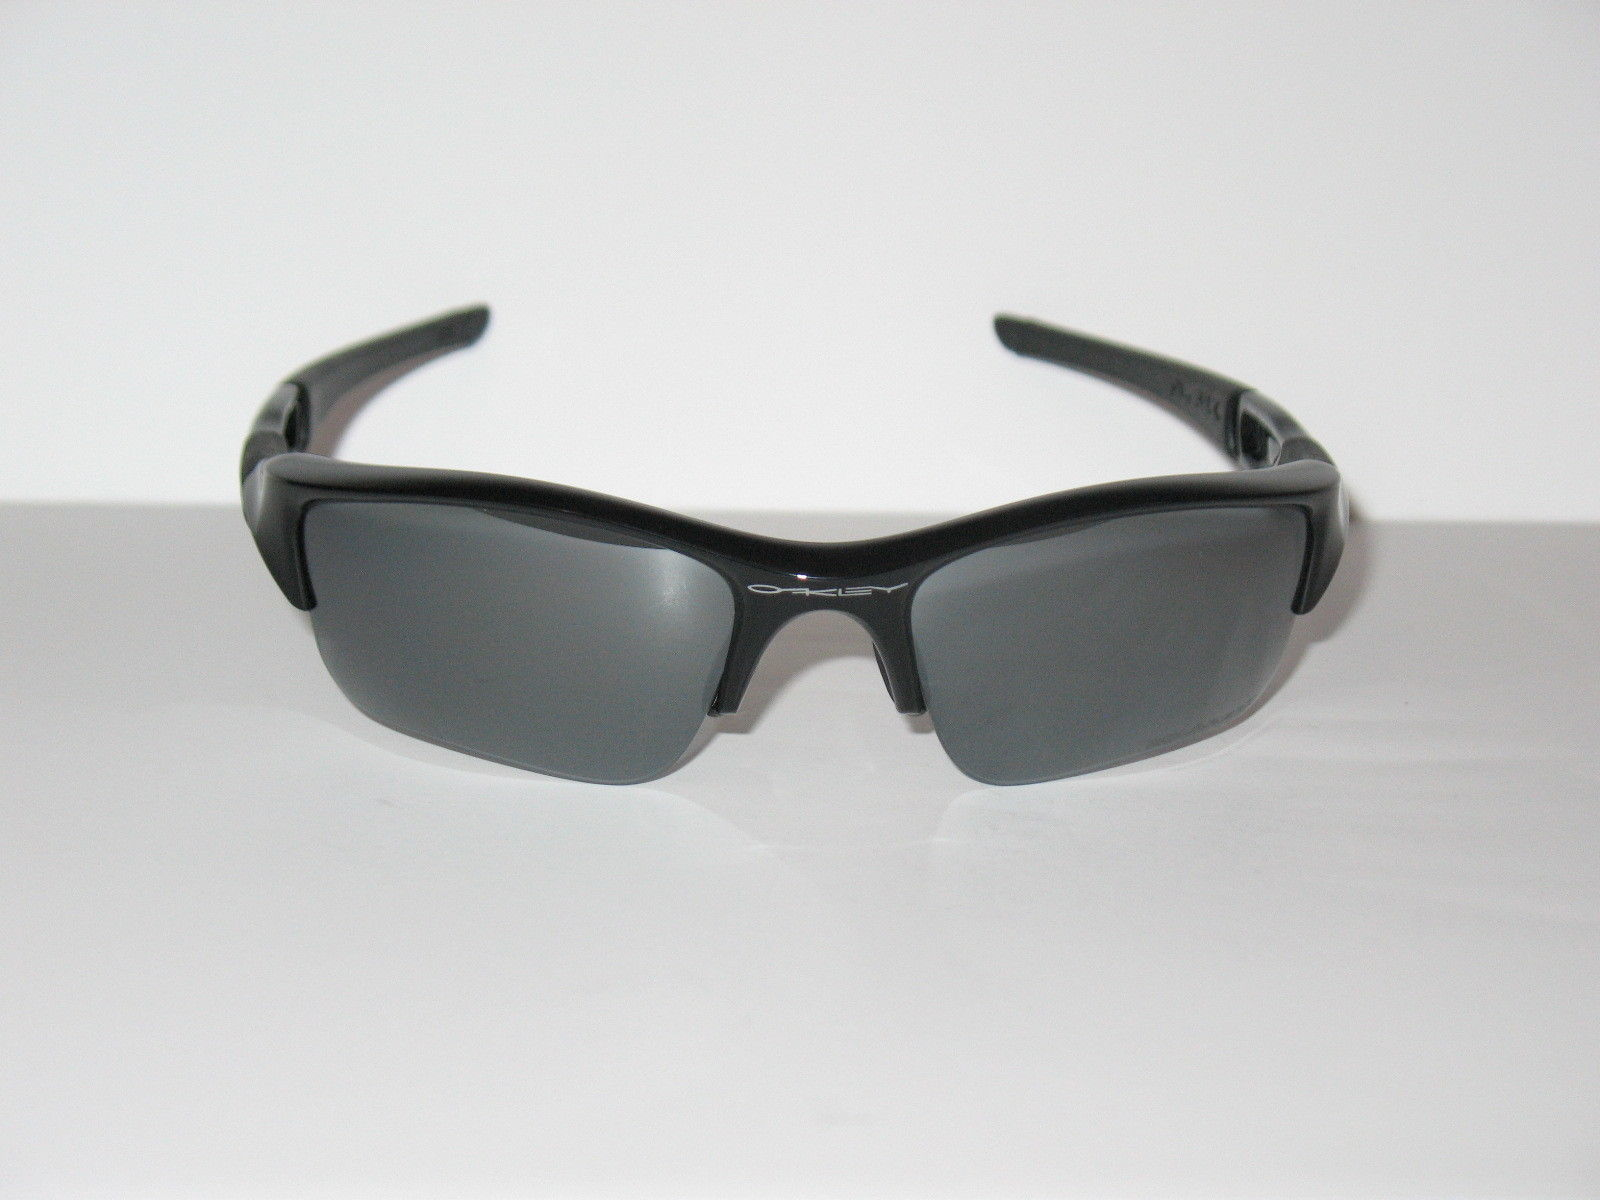 375a47bd033 Oakley Sunglasses Flak Jacket XLJ Jet Black and similar items. S l1600